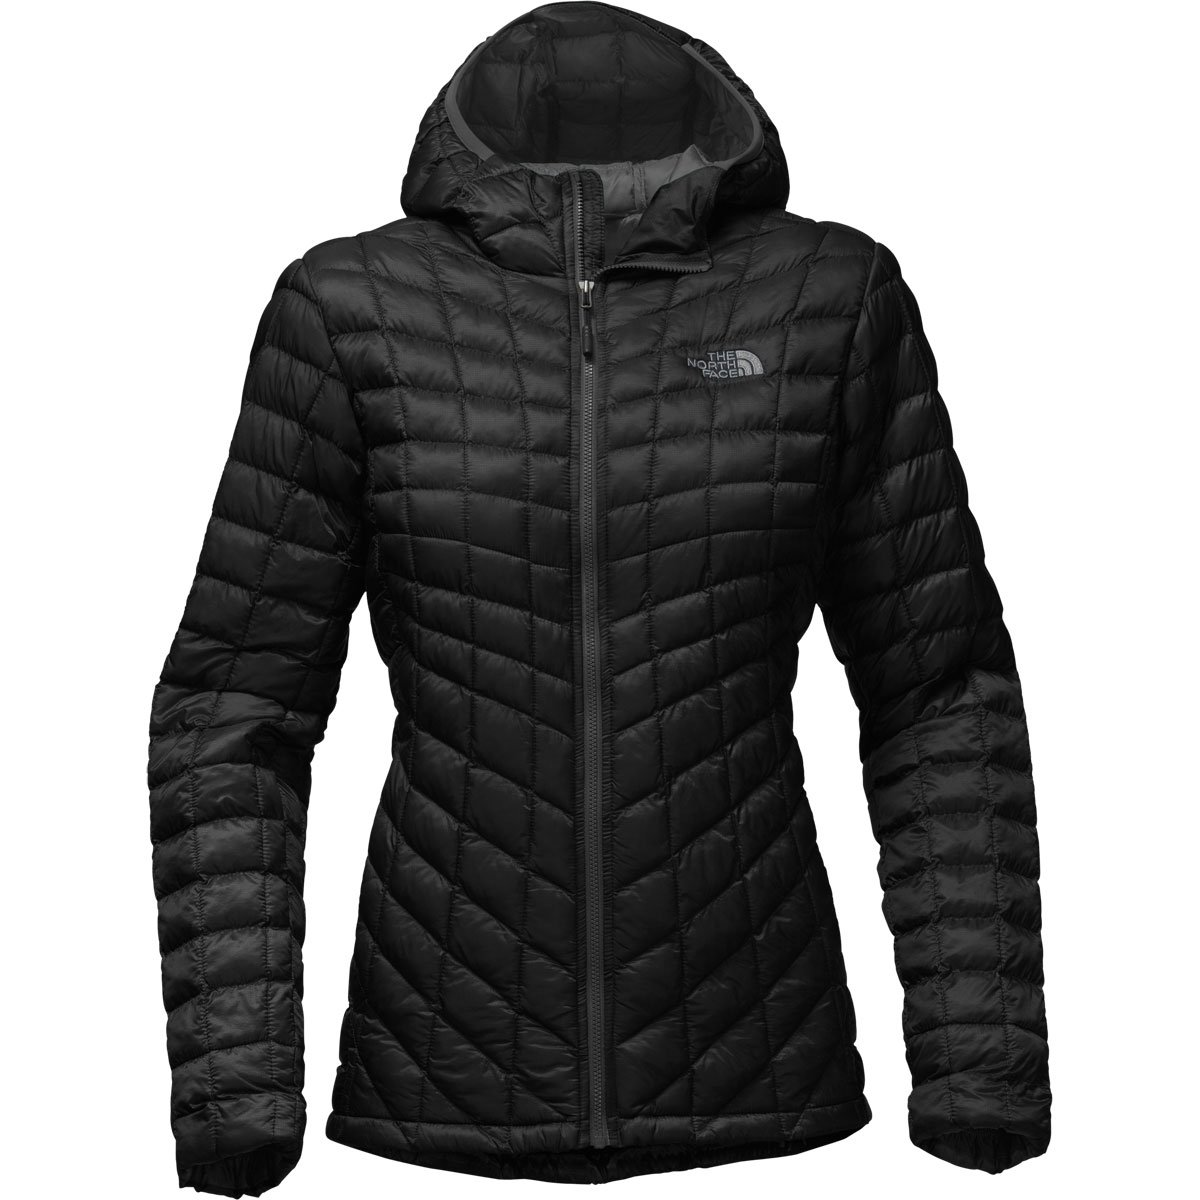 The North Face Women's Thermoball Hoodie - Black - S (Past Season) by The North Face